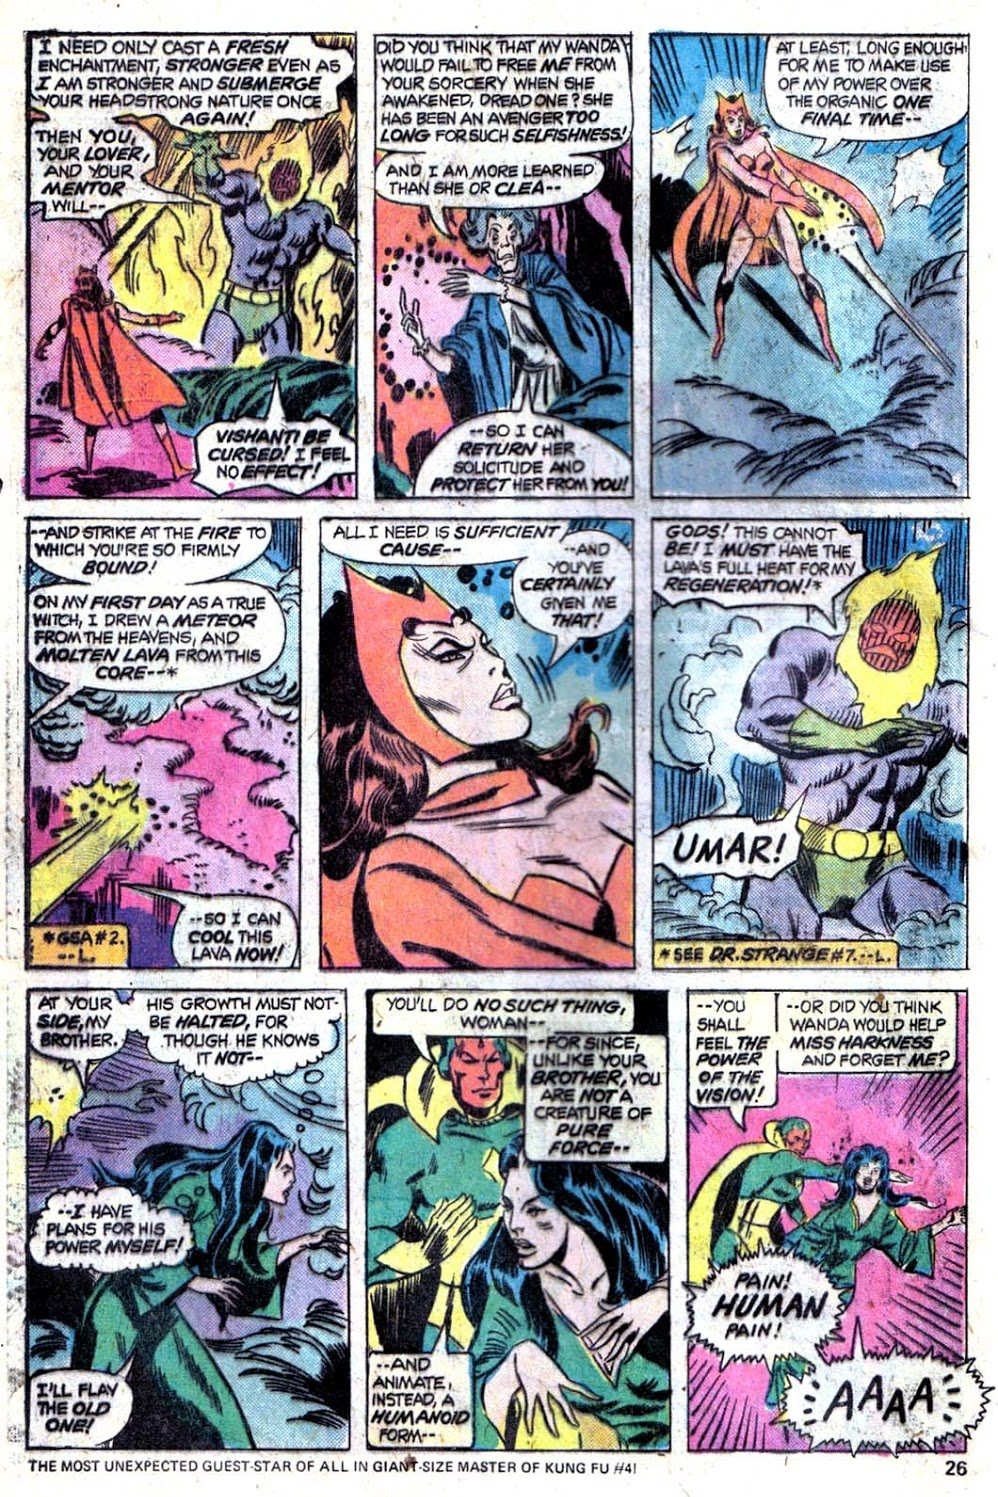 In 'Giant Size Avengers' #4, Vision, the Scarlet Witch and Miss Harkness battle Dormammu and Urma.